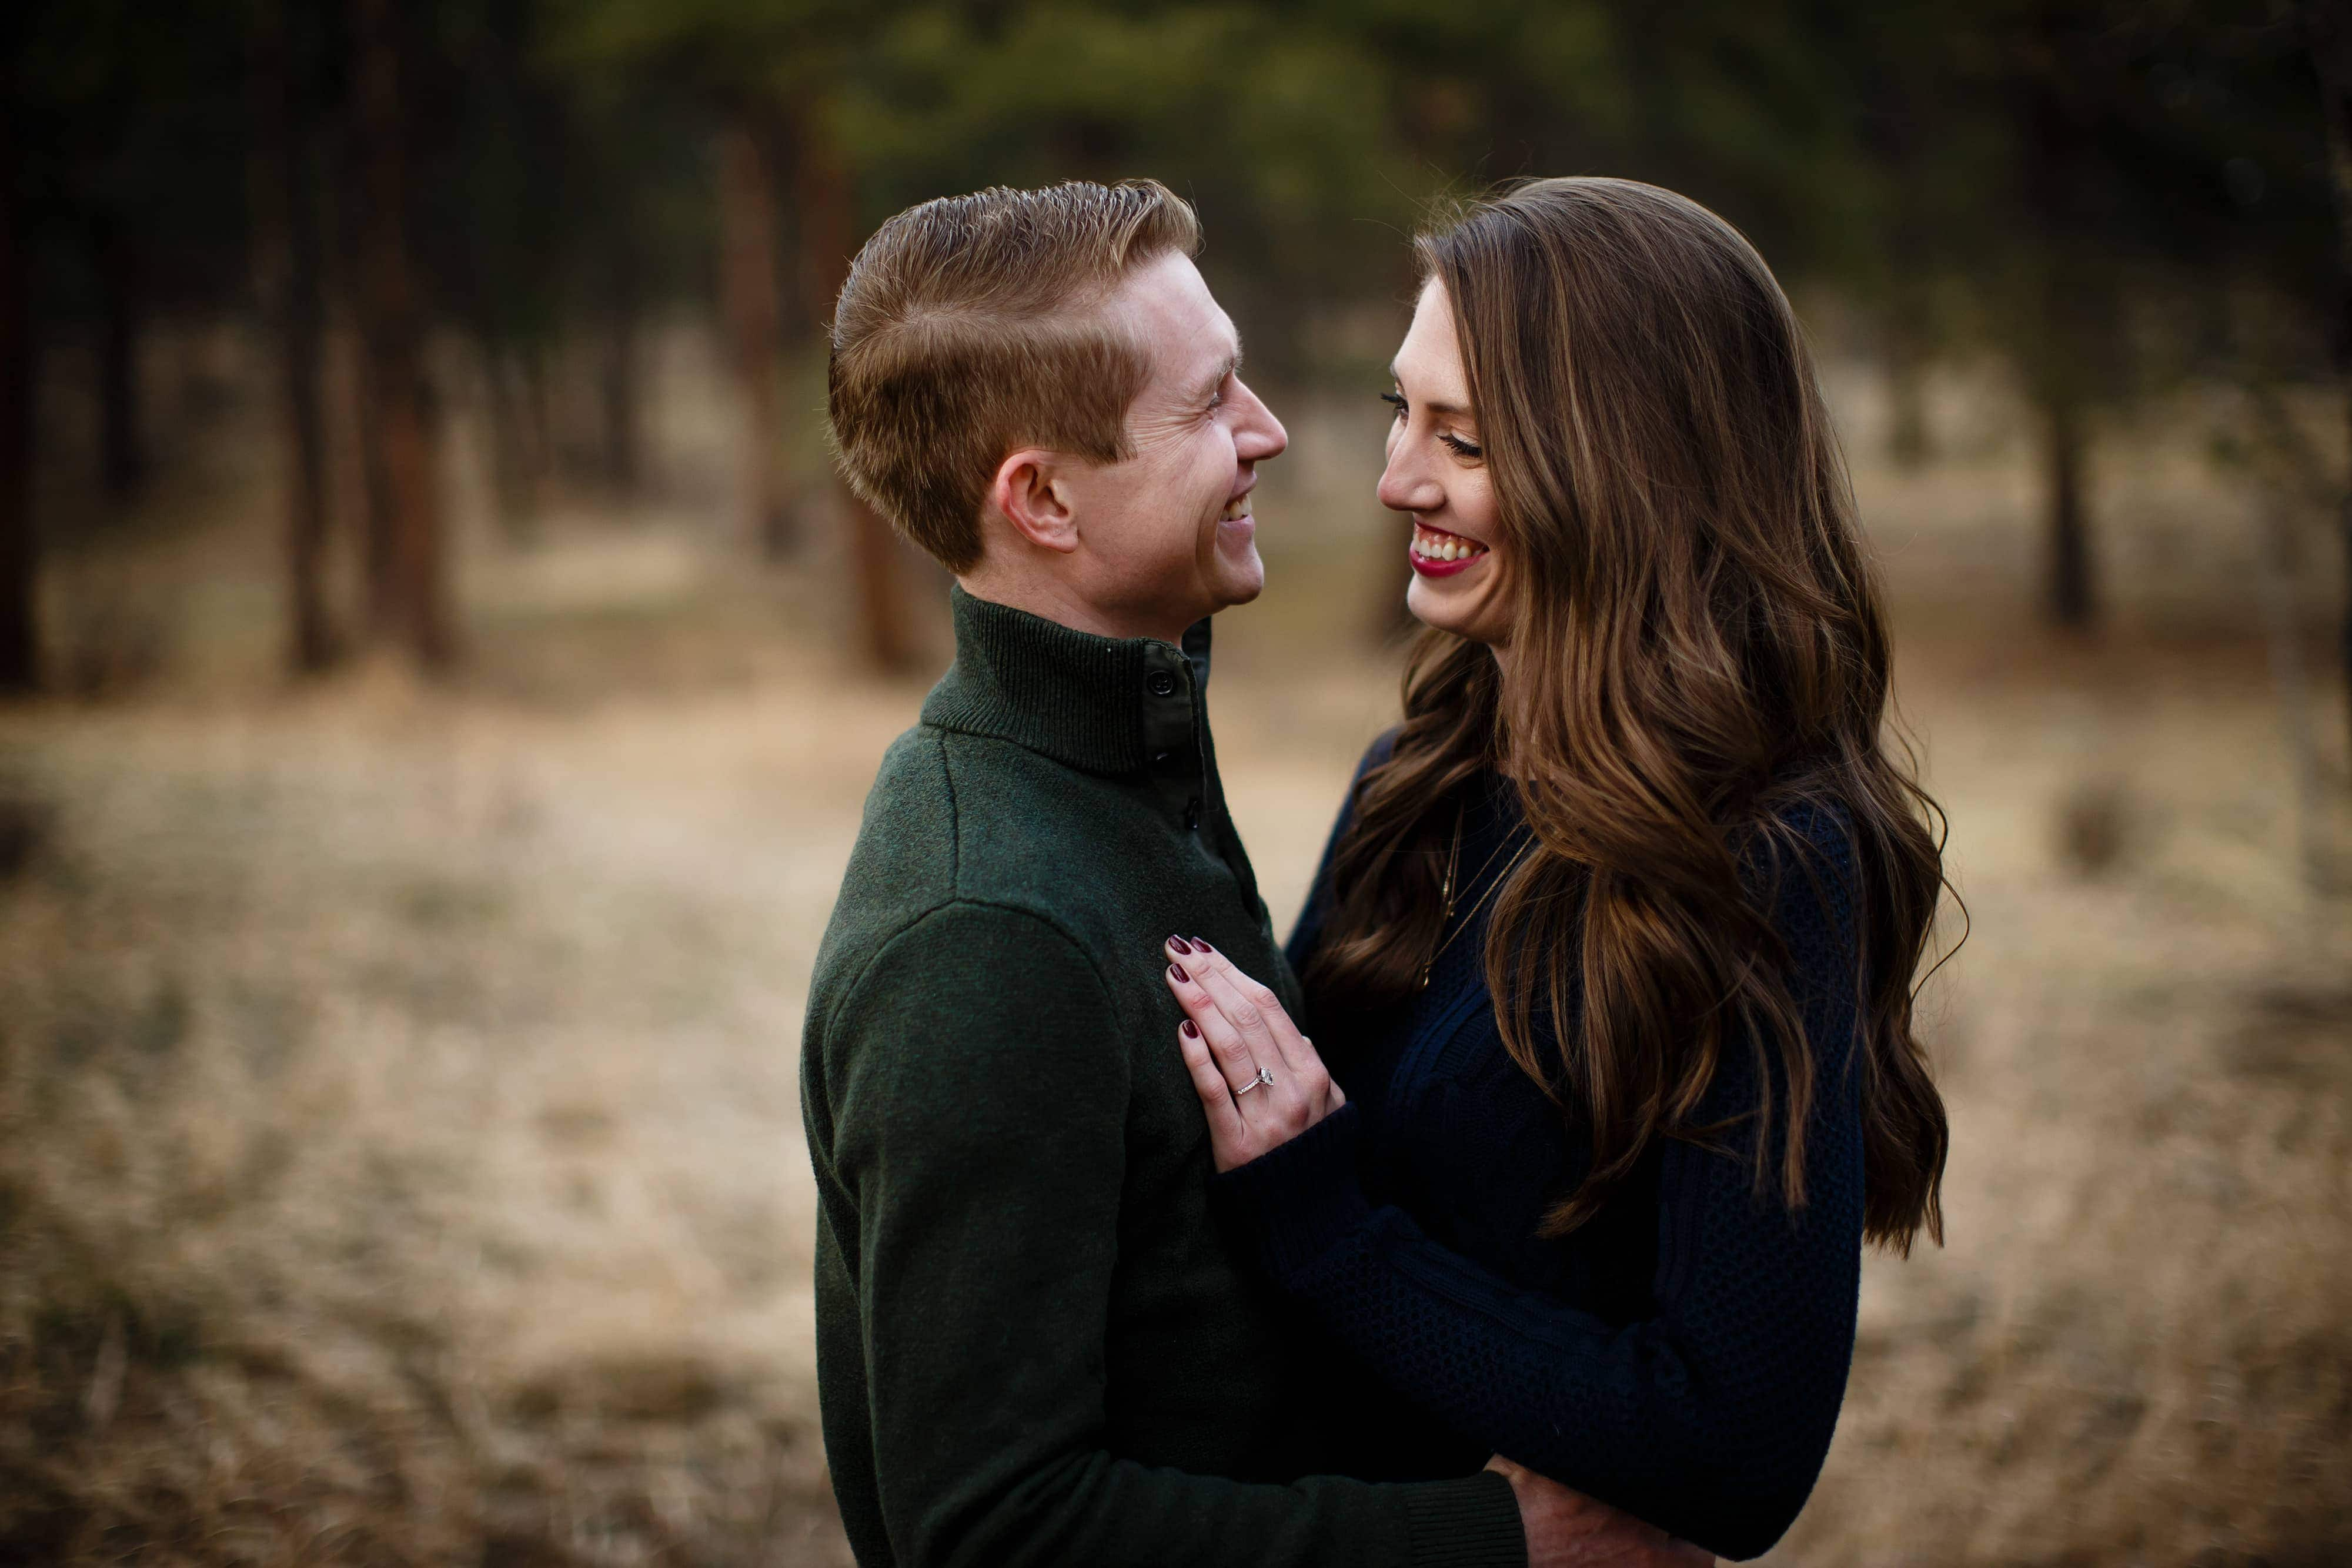 James and Hannah laugh together during their engagement session